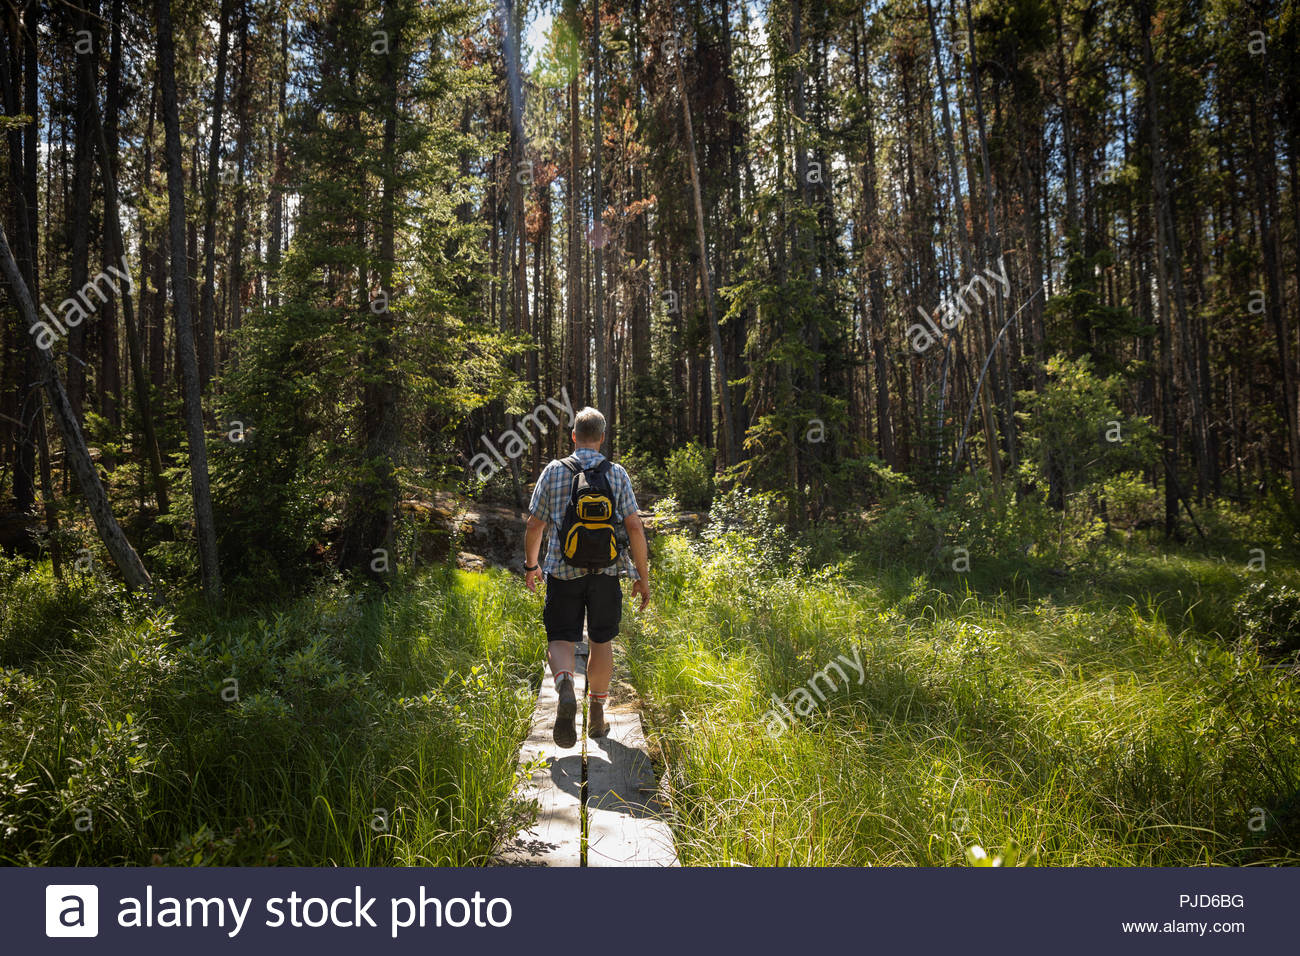 Mature man backpacking, hiking in sunny forest - Stock Image